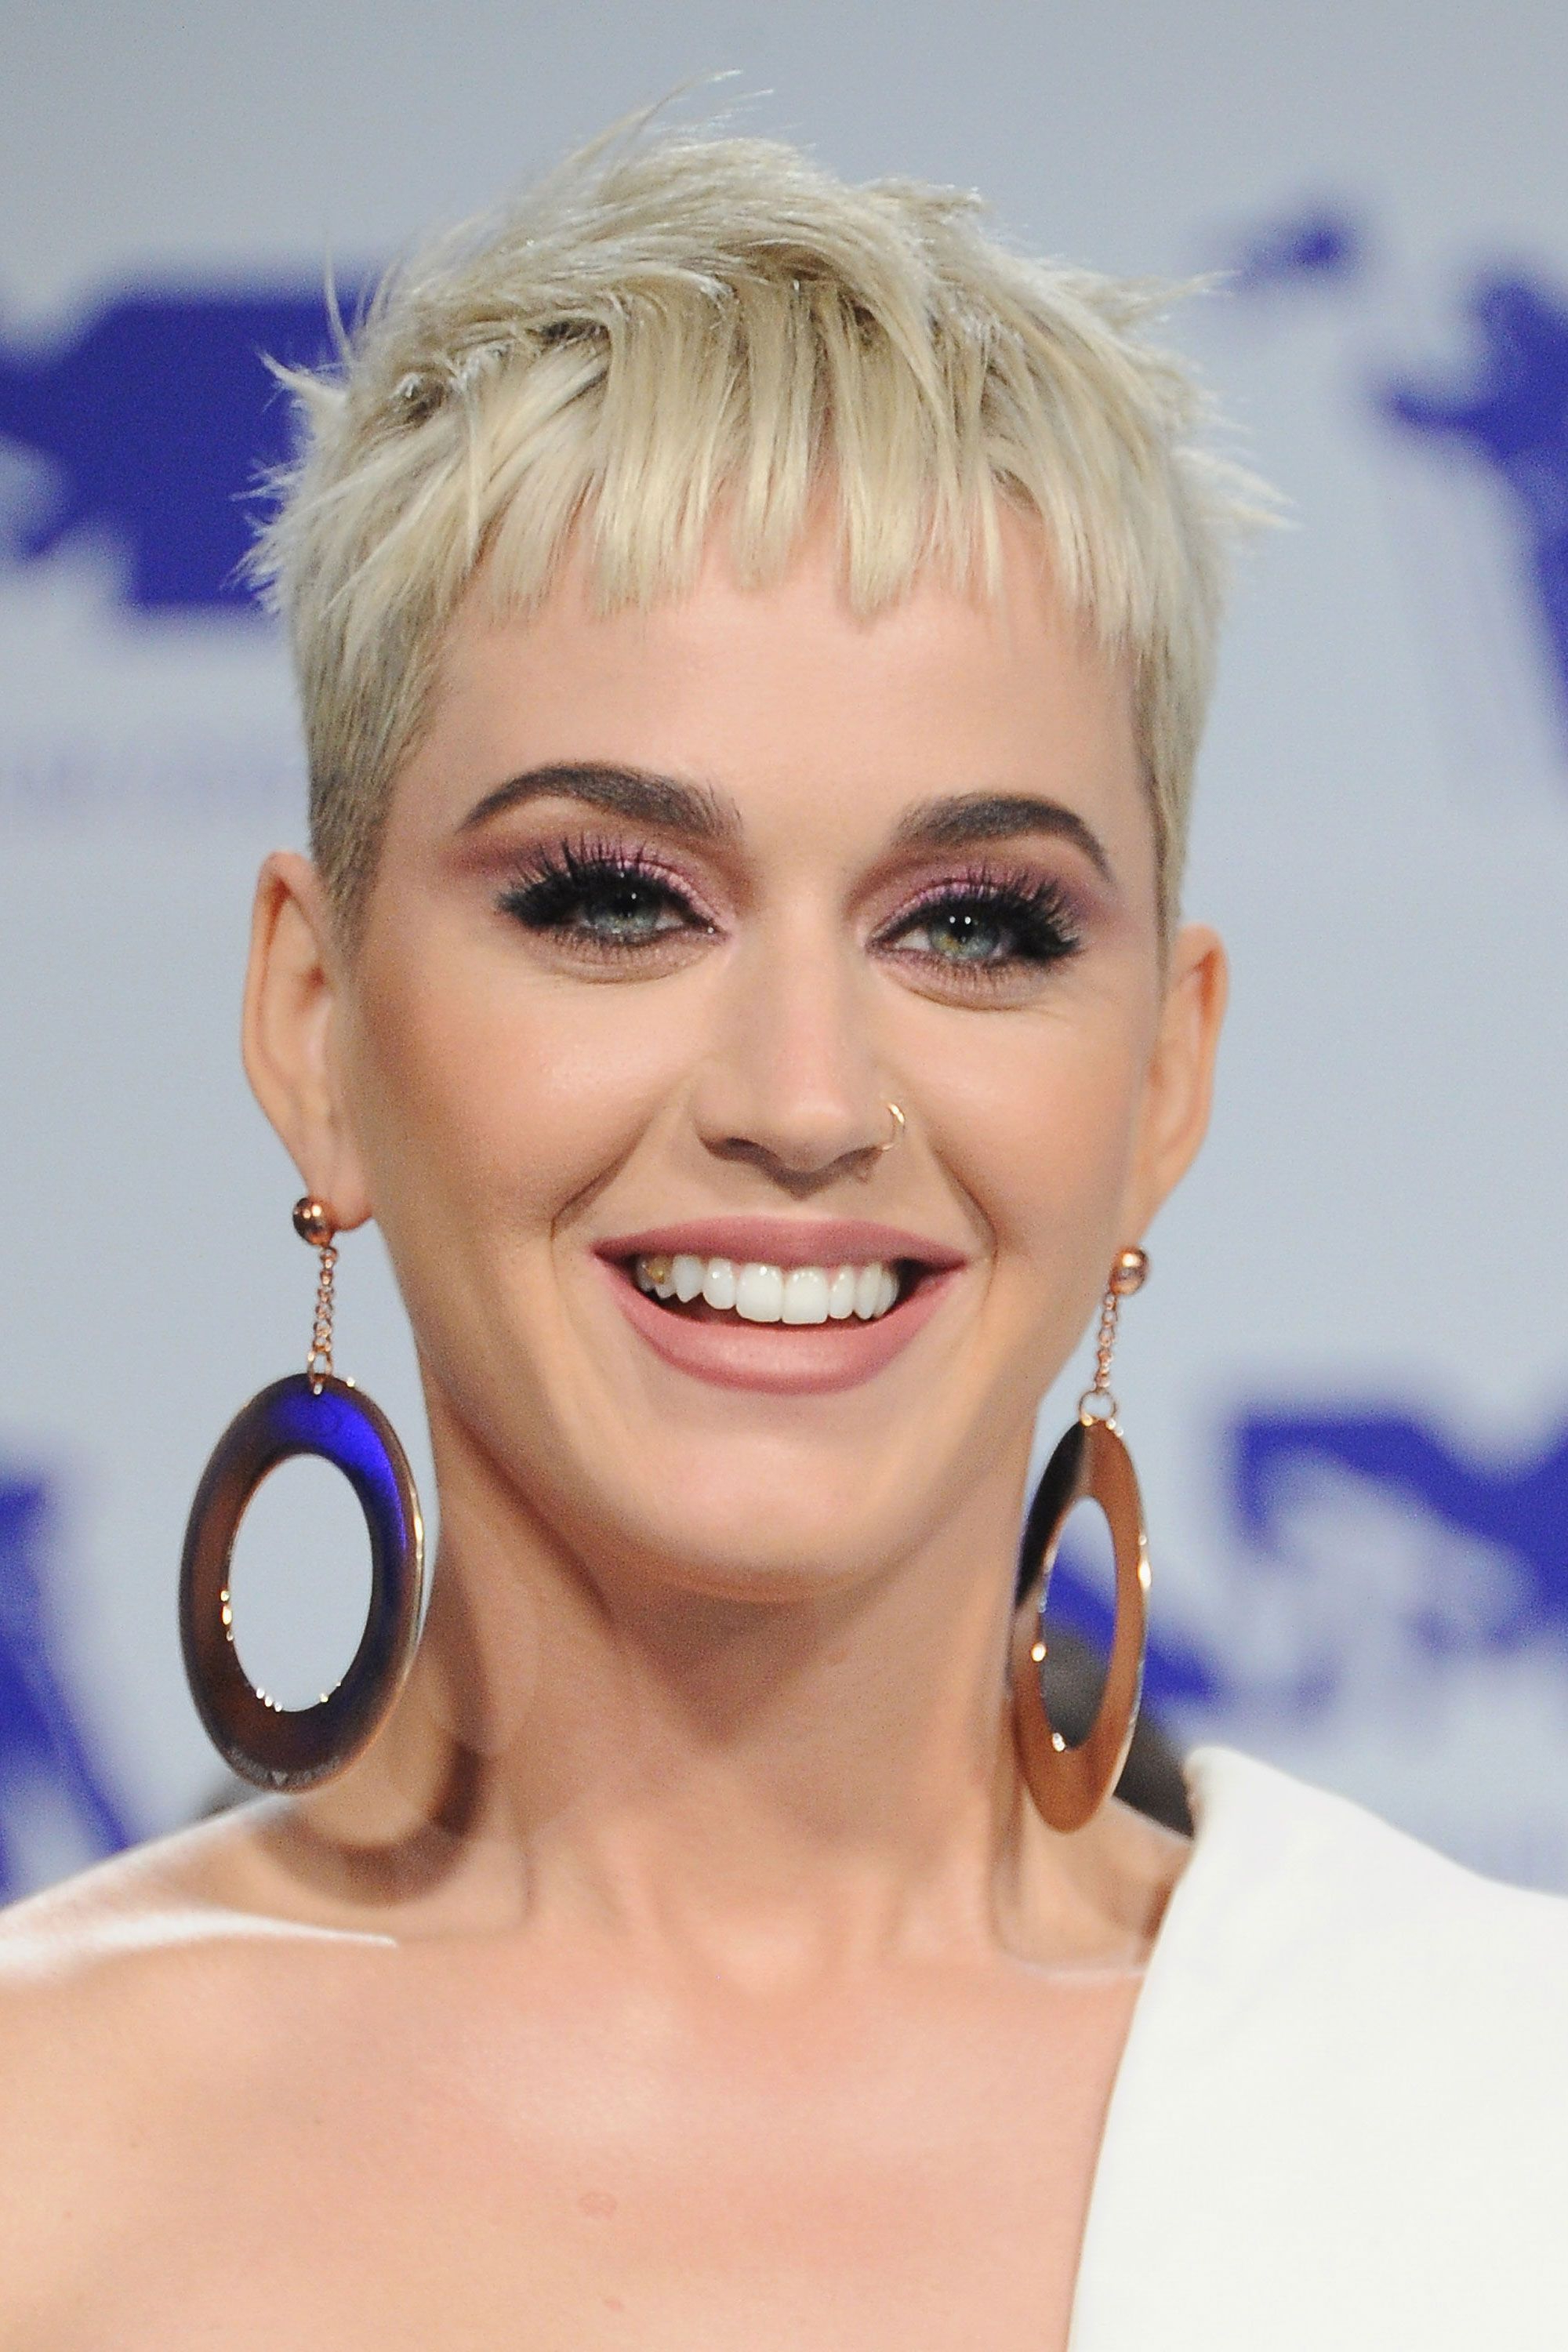 30 Short Hairstyles For Thick Hair 2017 – Women's Haircuts For Short Throughout Gray Pixie Hairstyles For Thick Hair (View 7 of 20)